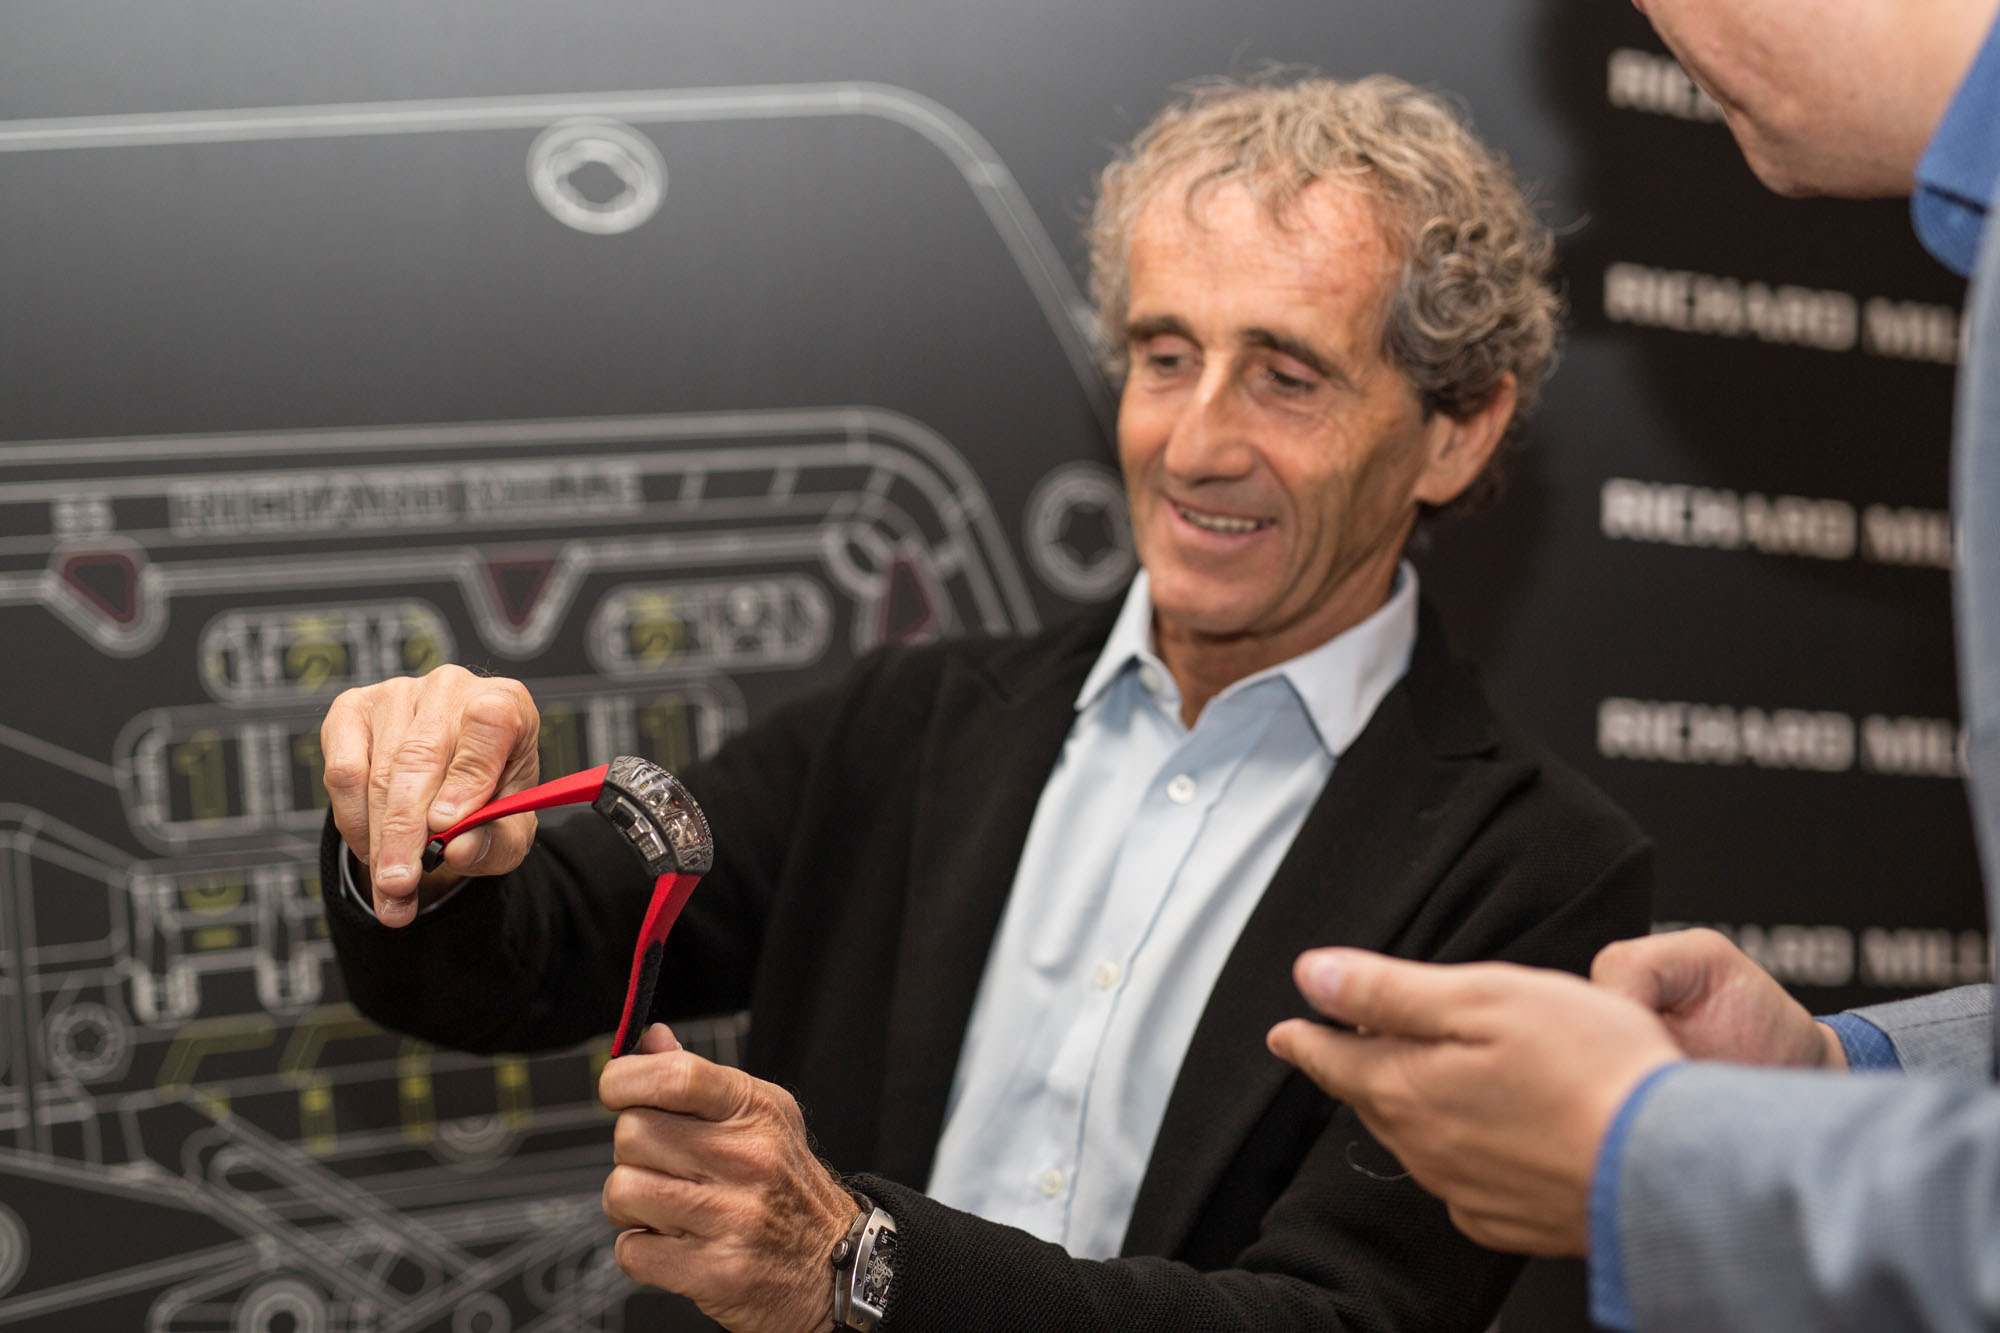 Alain Prost showing off the new RM70-01 watch